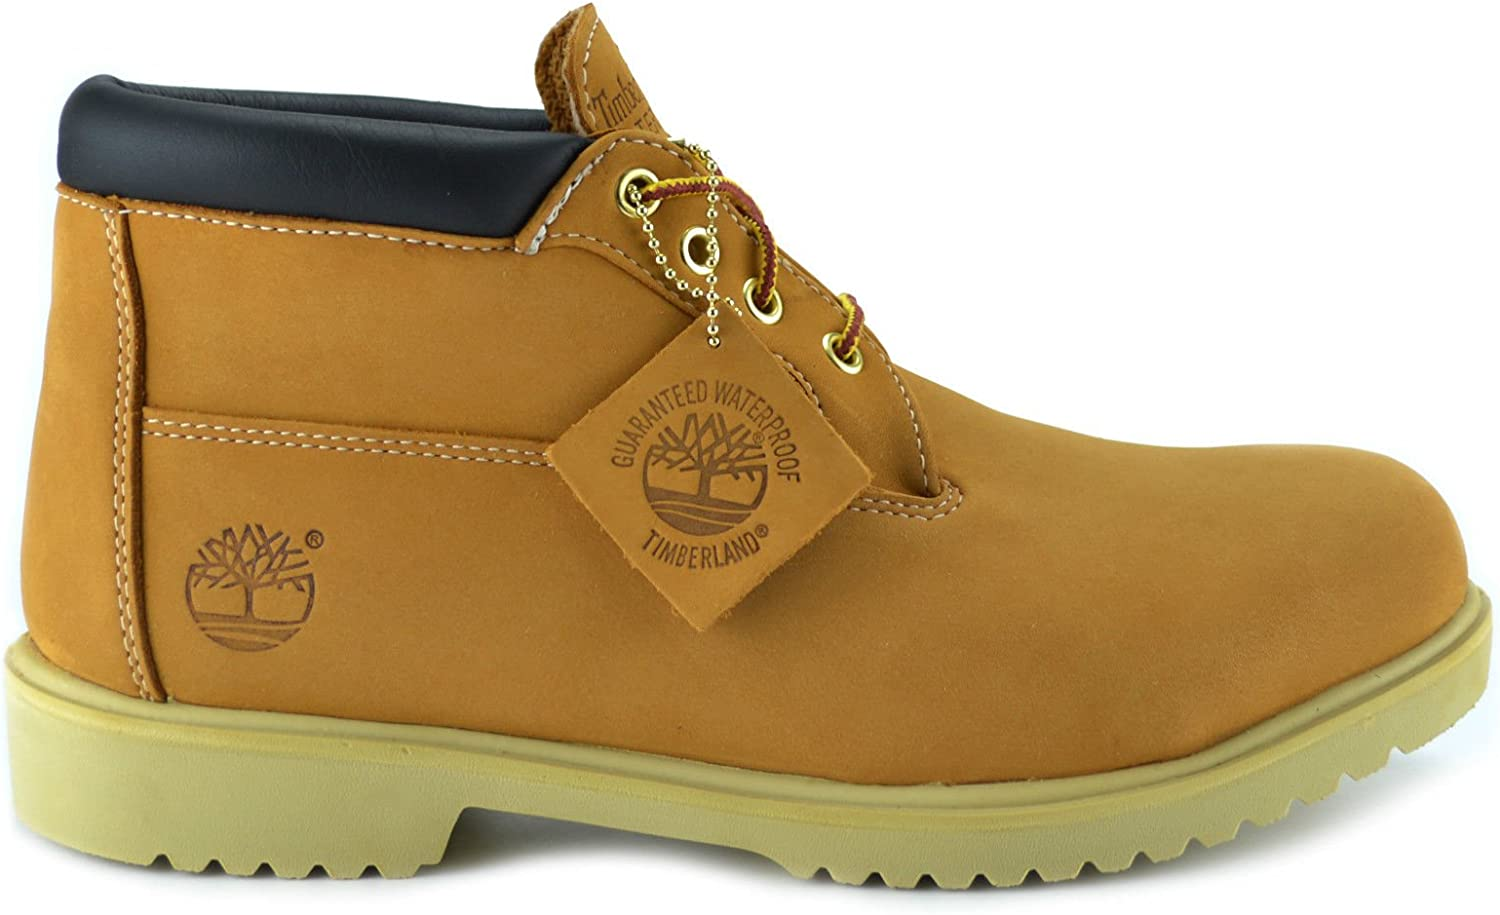 Glamour Fértil Superficial  Timberland Men's Waterproof Chukka Boots Wheat 50061 Brown Size: 12.5 UK:  Amazon.co.uk: Shoes & Bags